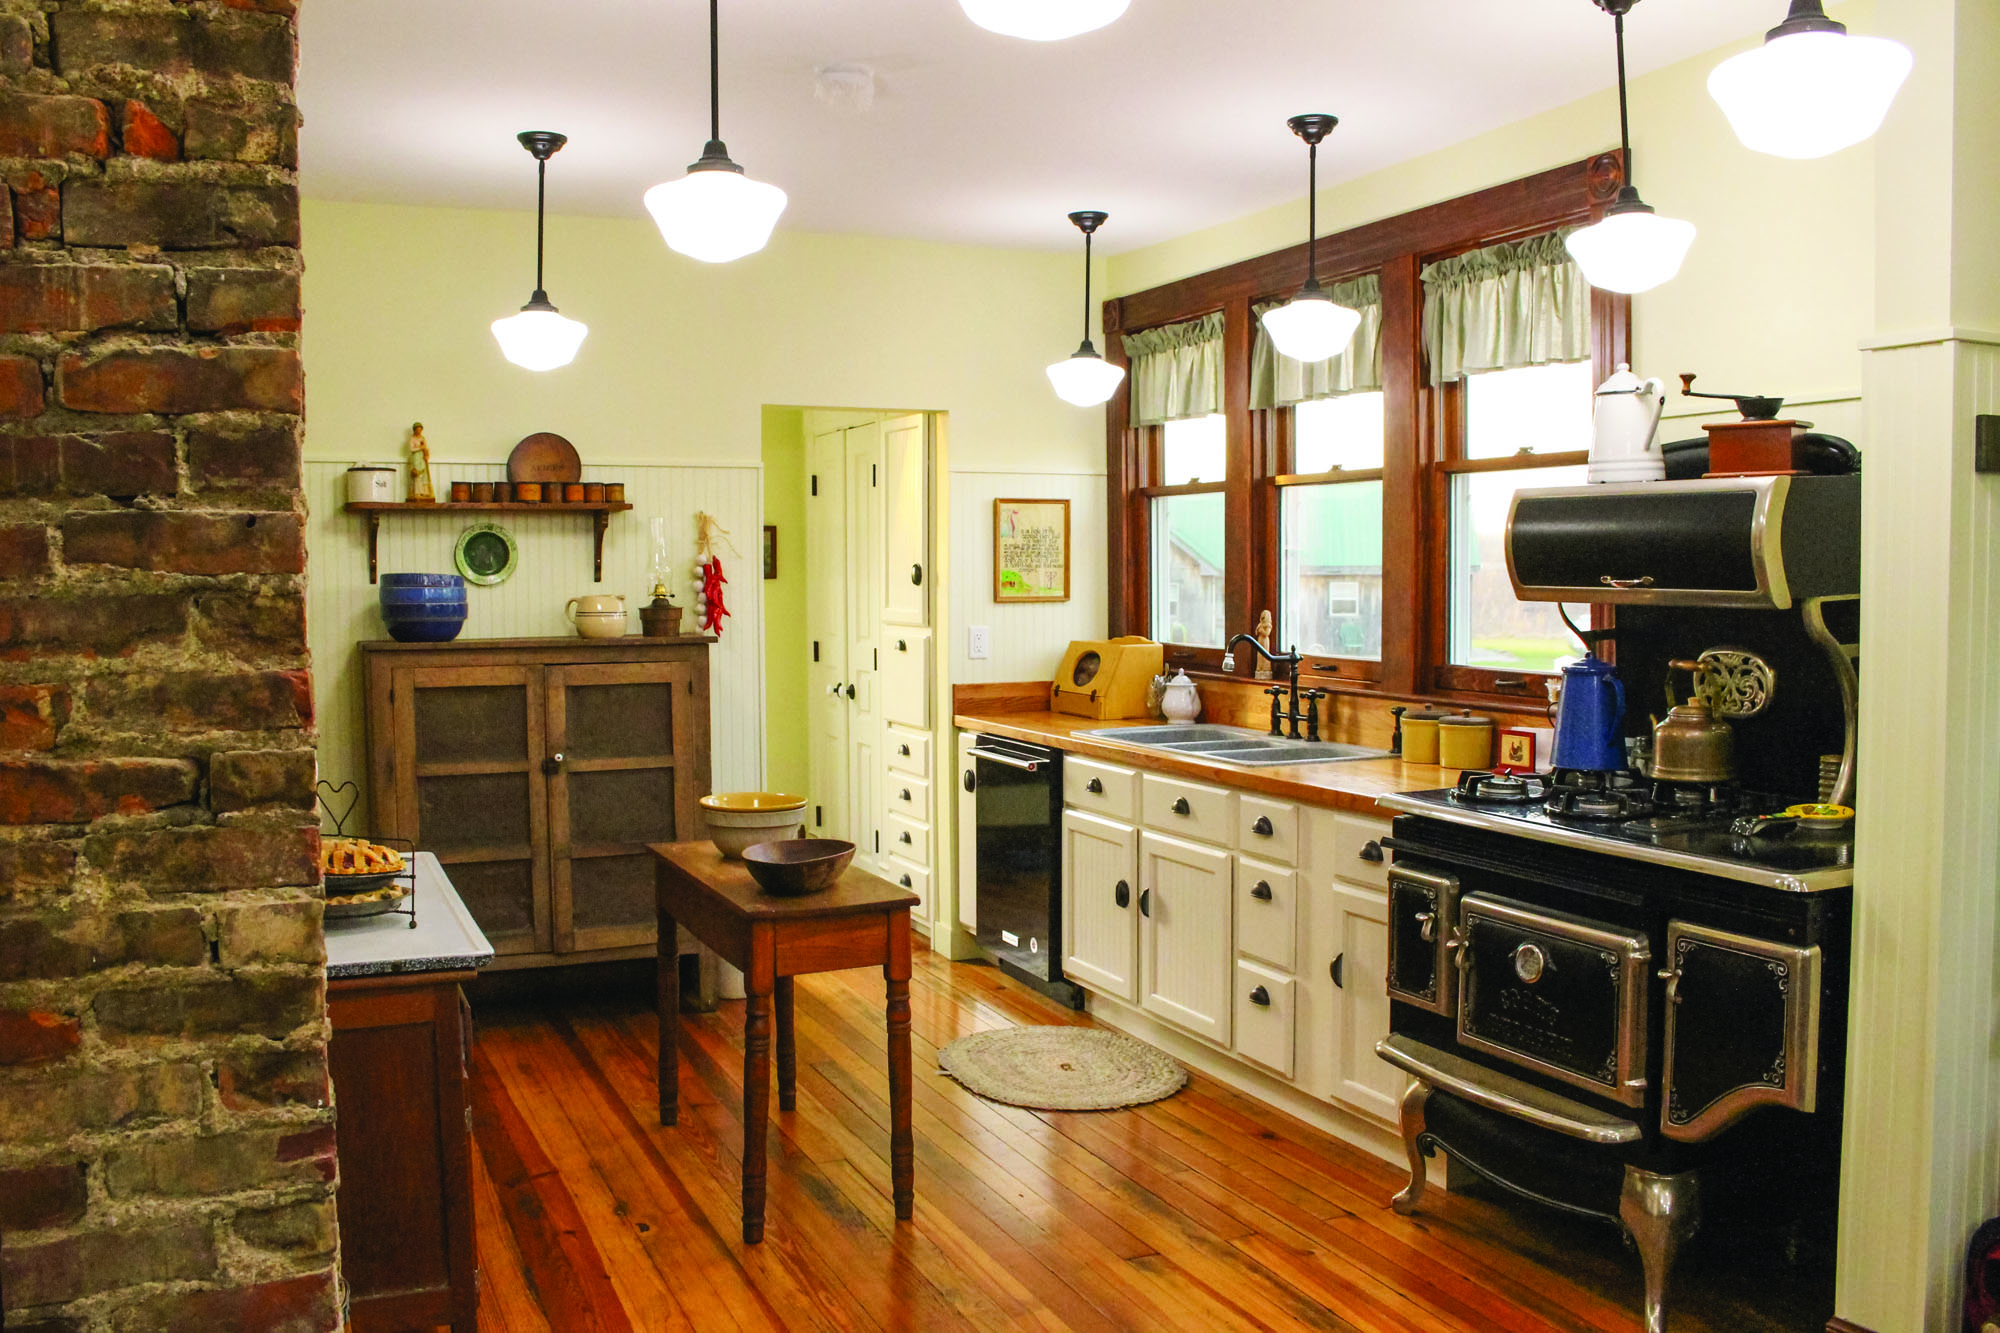 With a wall opened up, the kitchen is larger and more functional. The range that looks like a woodstove is actually a modern reproduction.